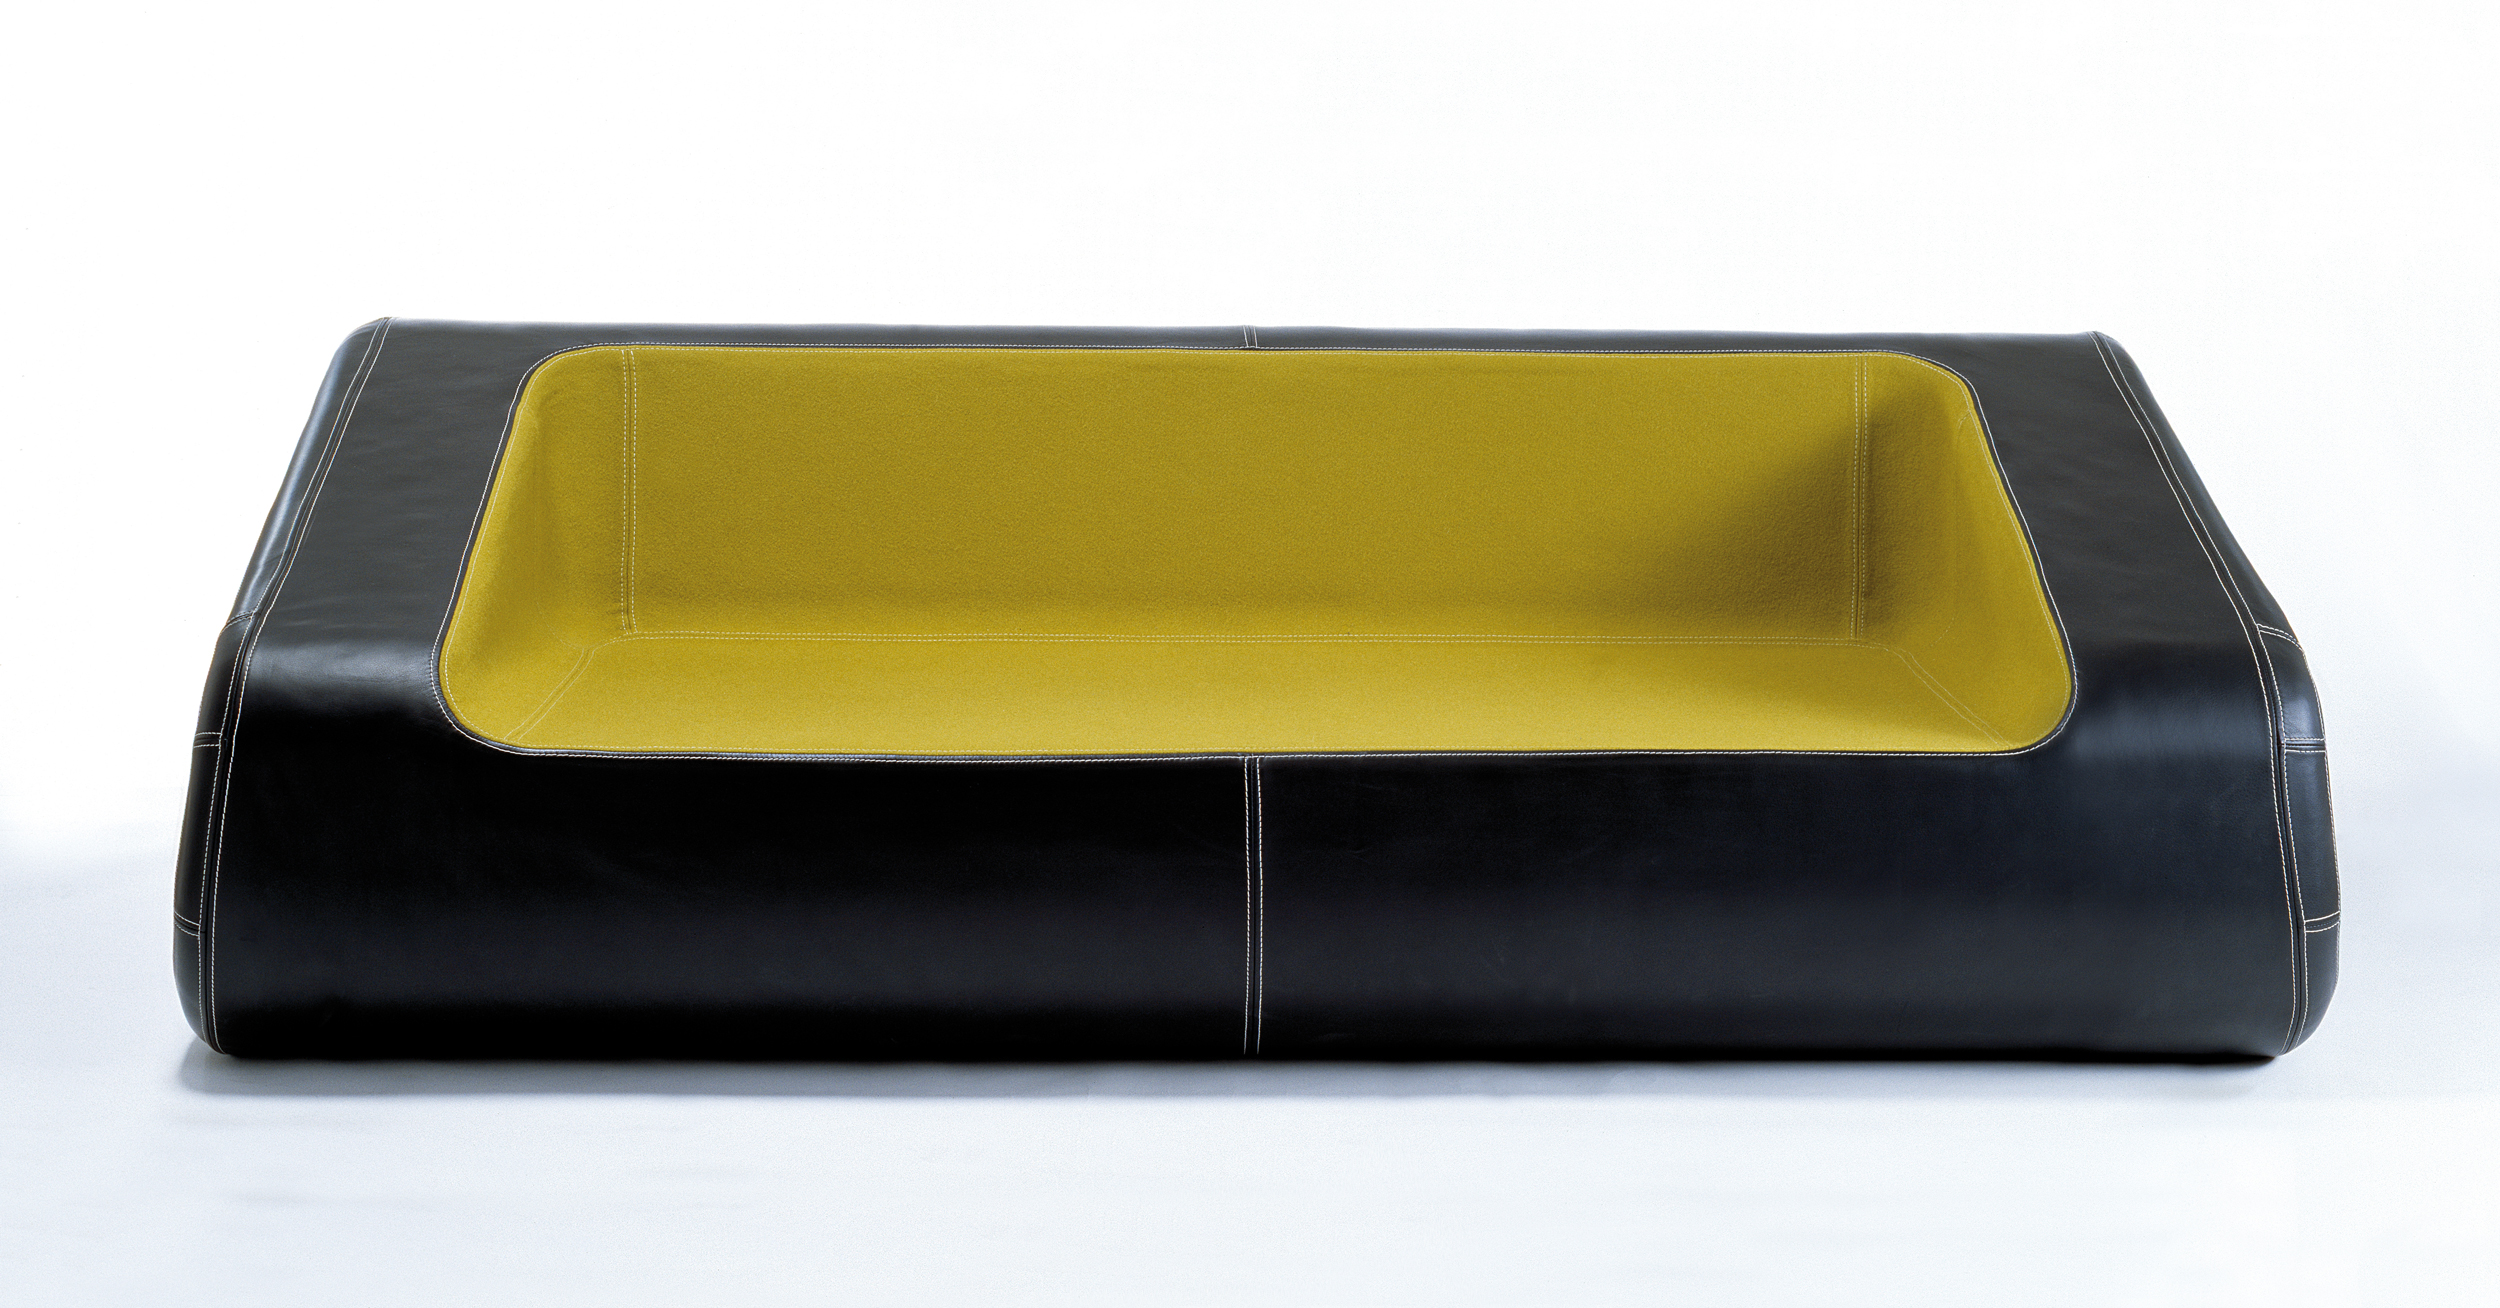 The Mormor couch was designed for Danish furniture company HAY in 2006.